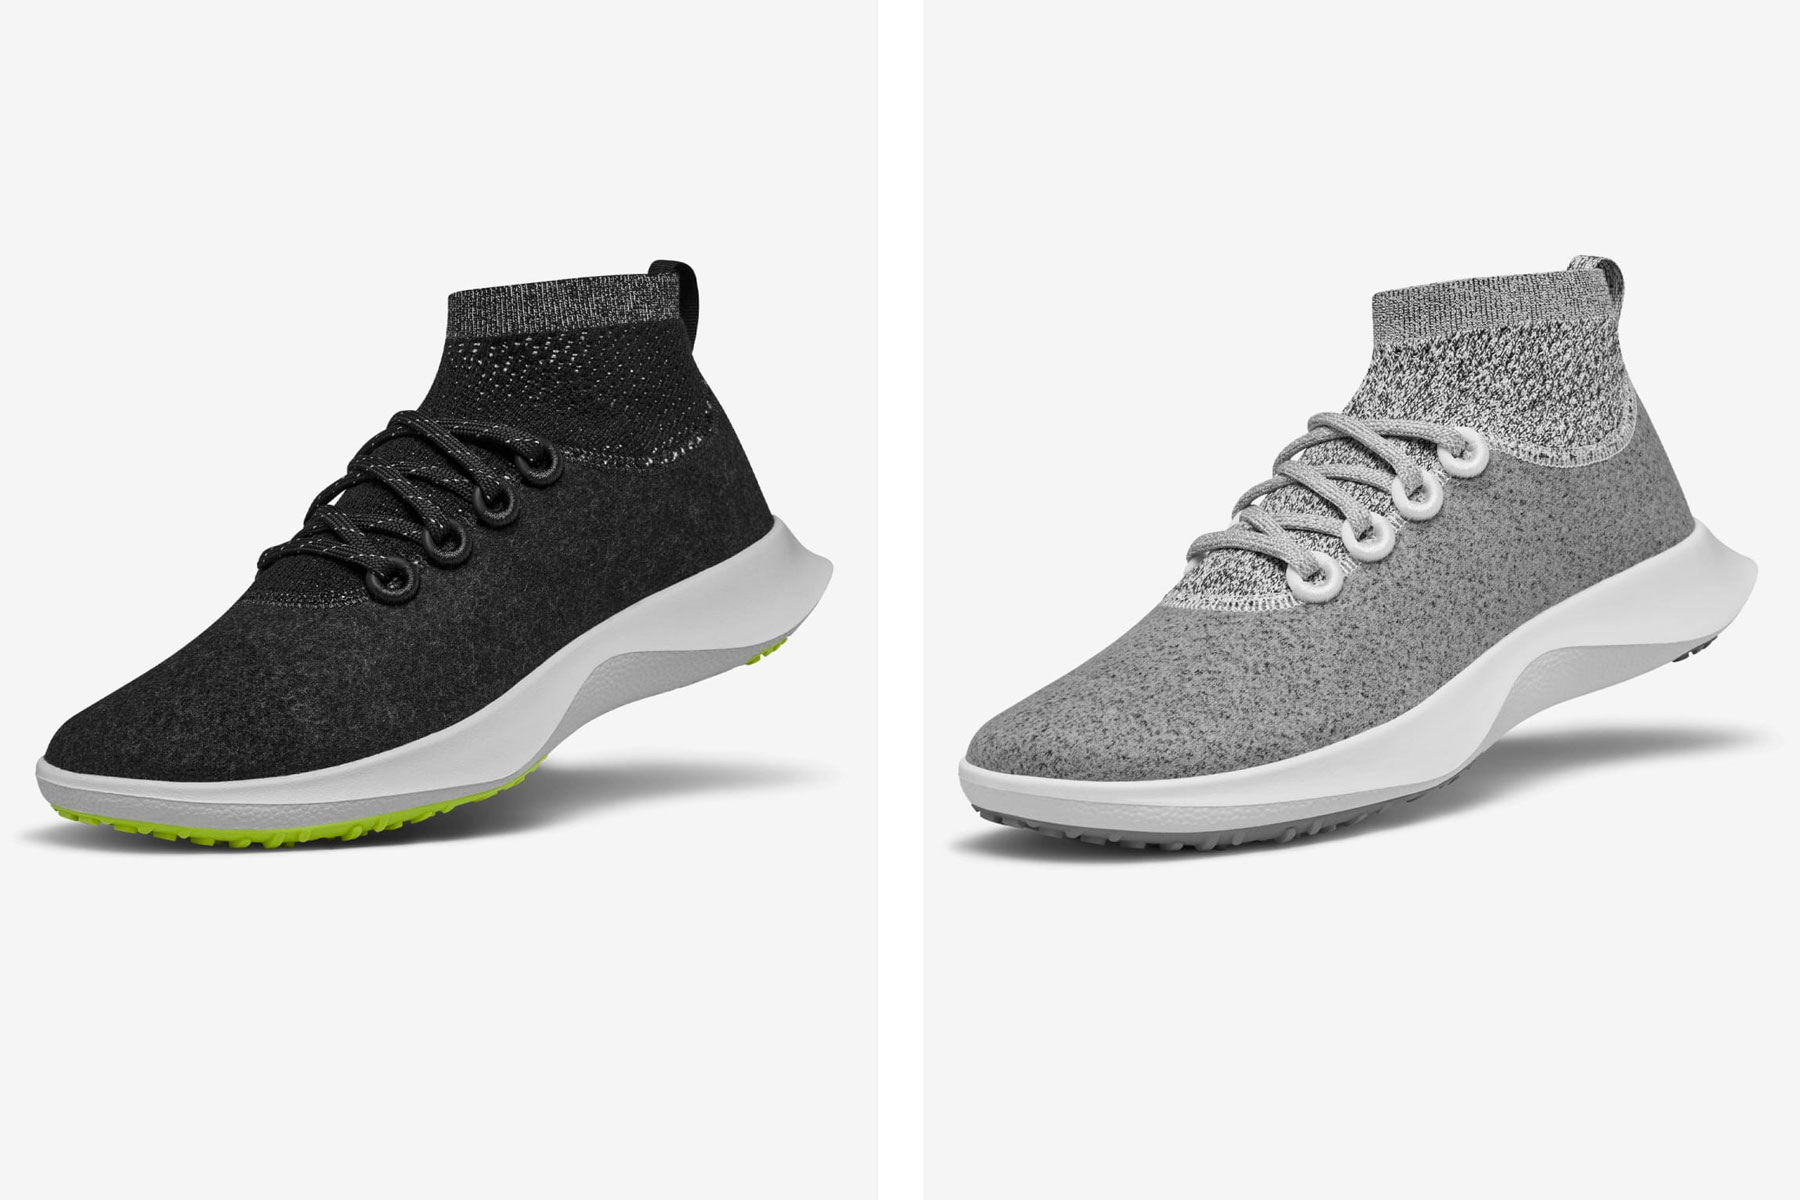 Black and grey running shoes